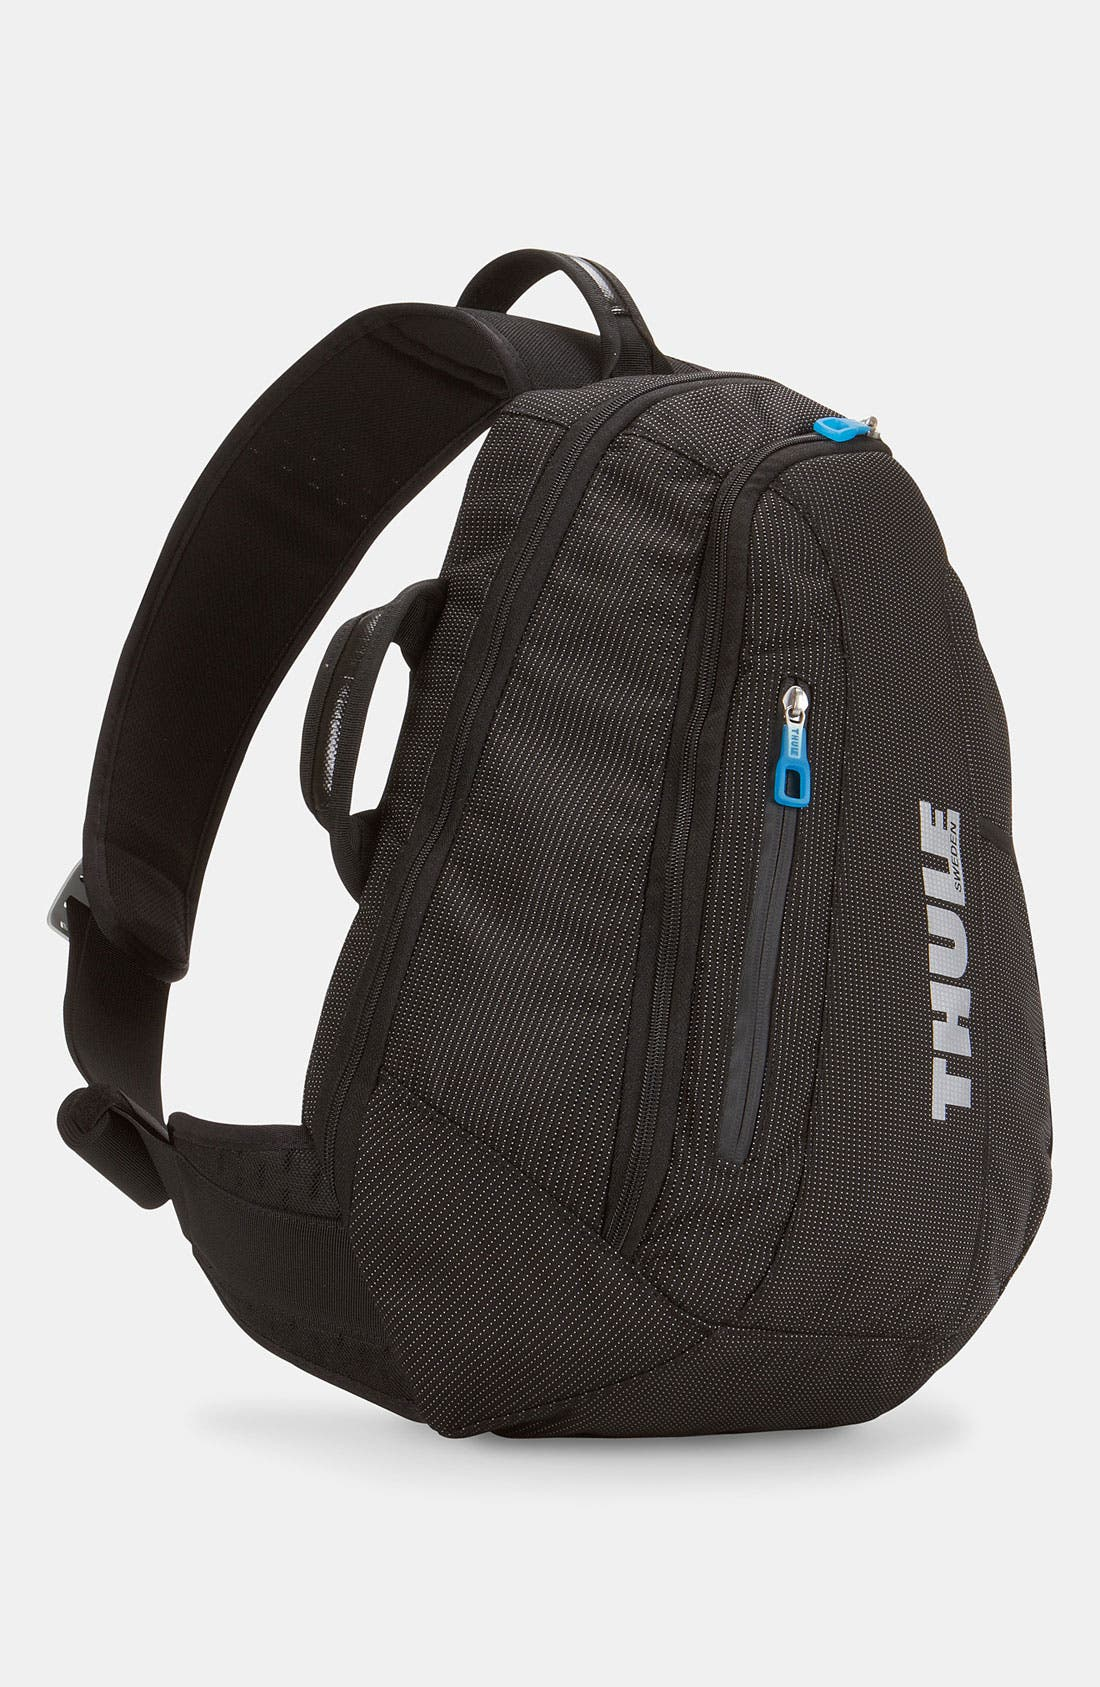 Main Image - Thule 'Crossover' Sling Backpack